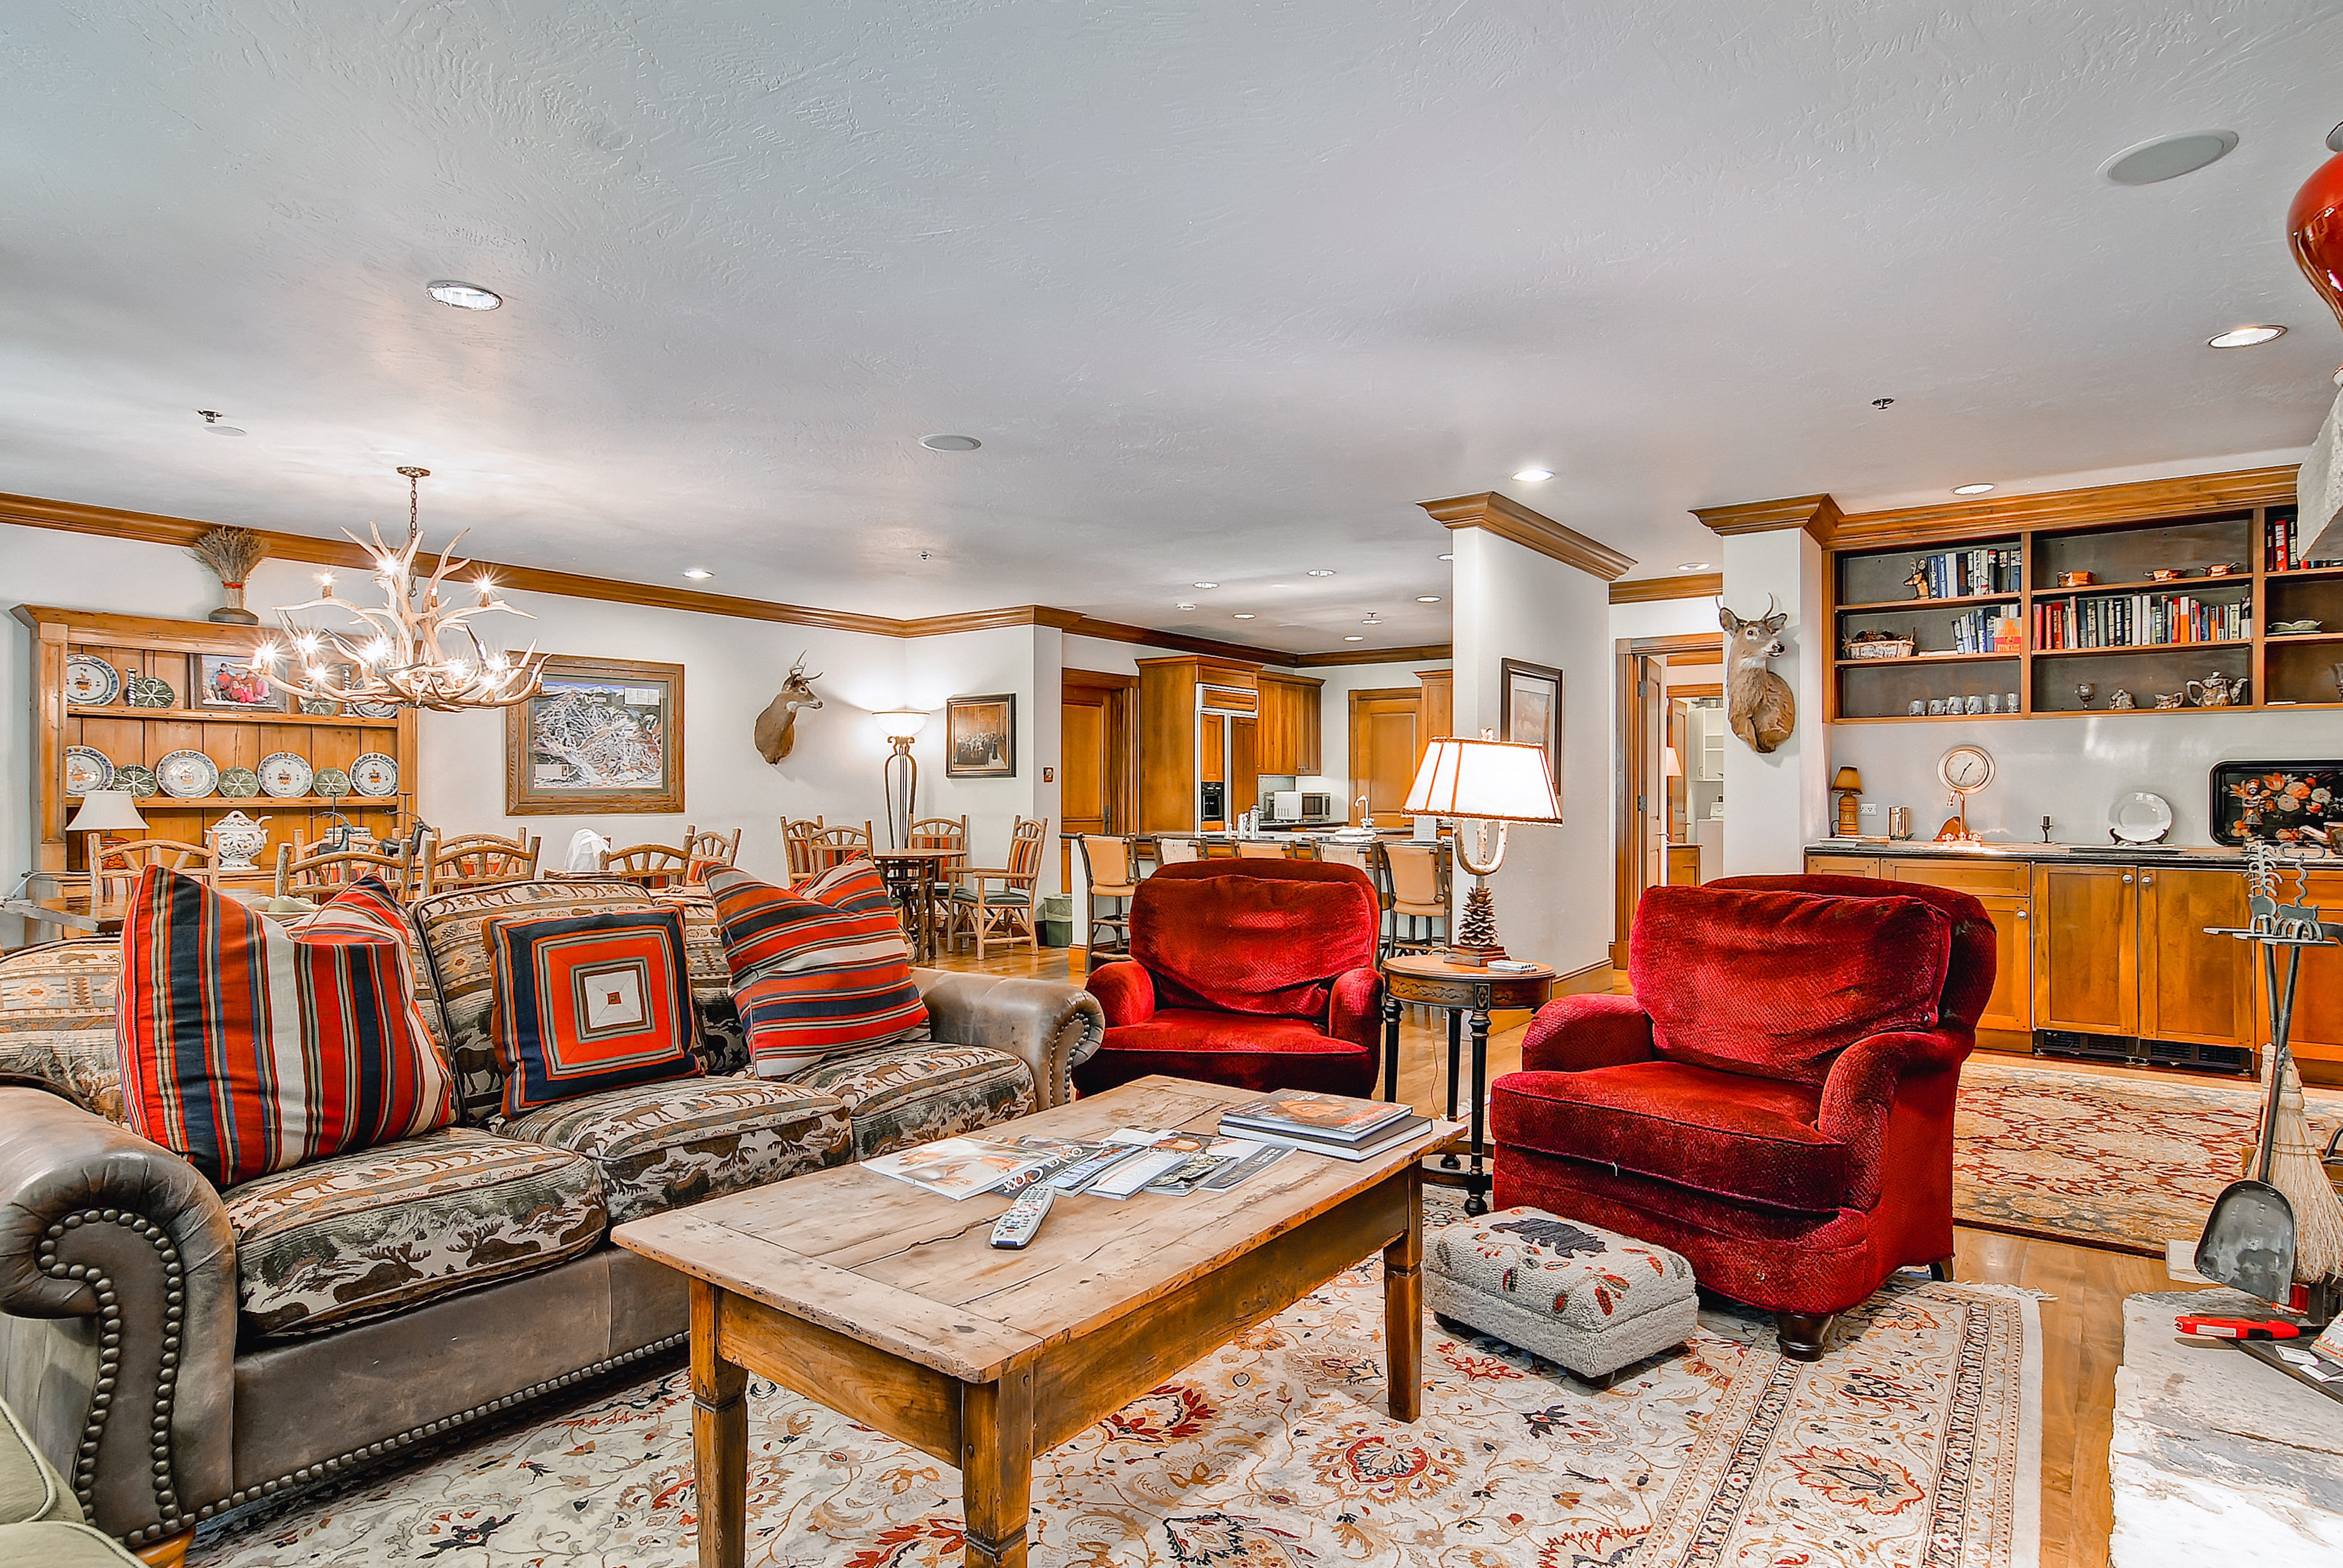 Property Image 1 - Large Mountain Condo in Beaver Creek with Valley Views